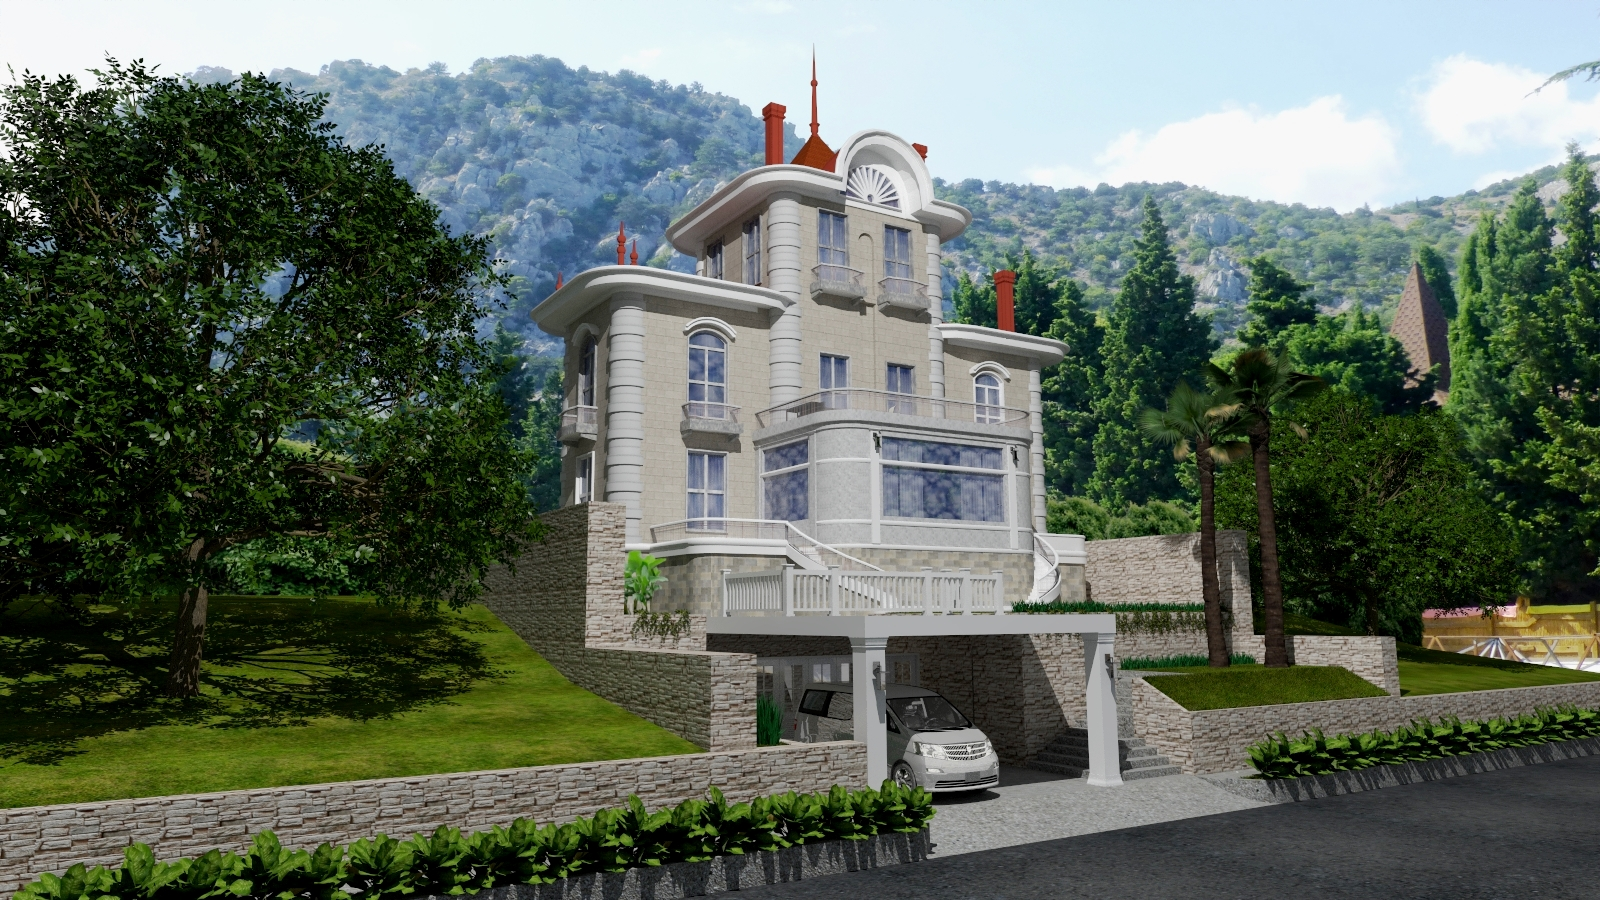 Exterior of the house. in SketchUp vray 3.0 image